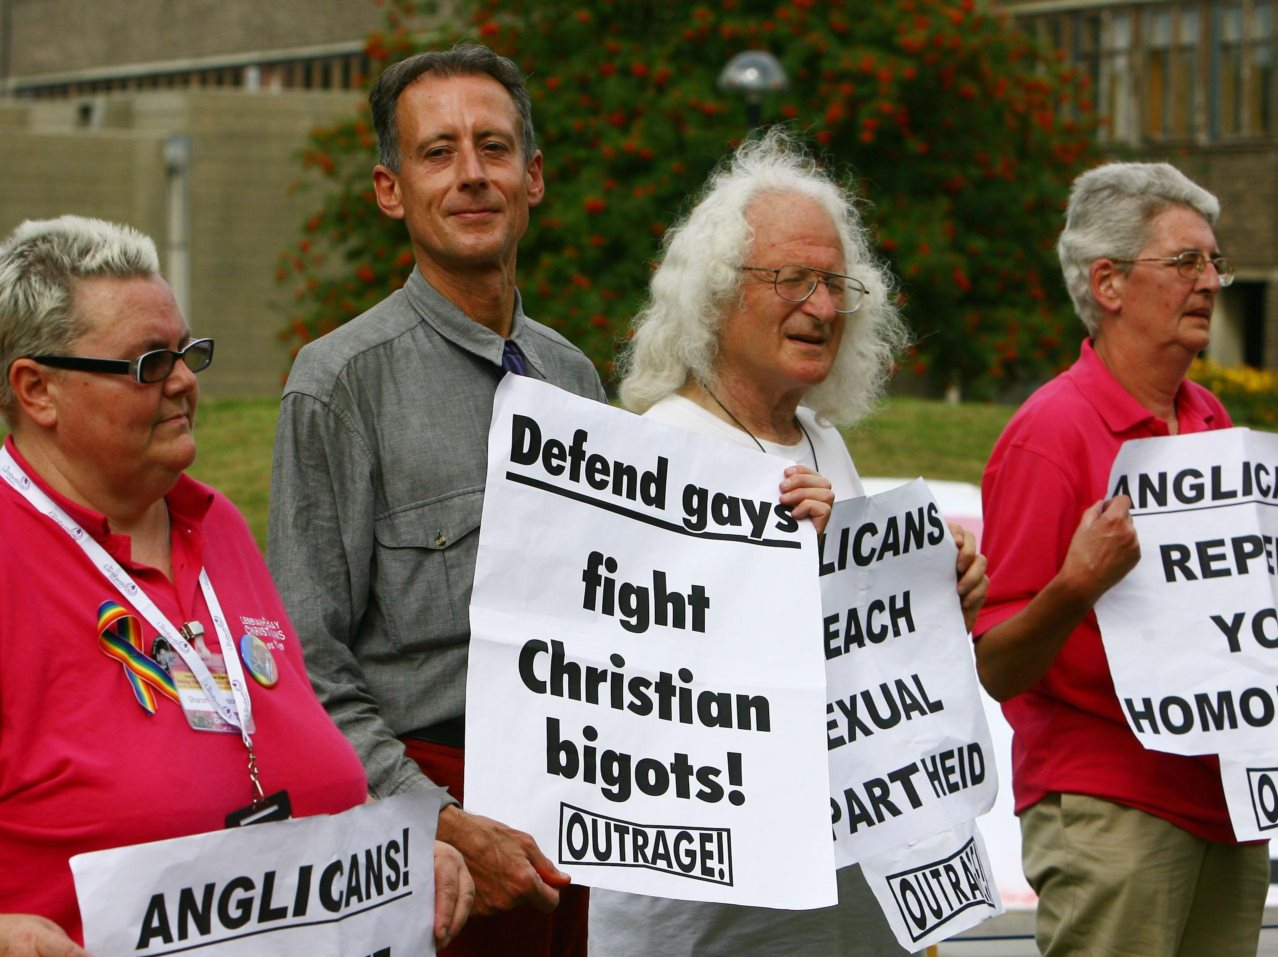 From Homophobia to Anti-Bigotry: How Did Christians Become the New Pariahs?